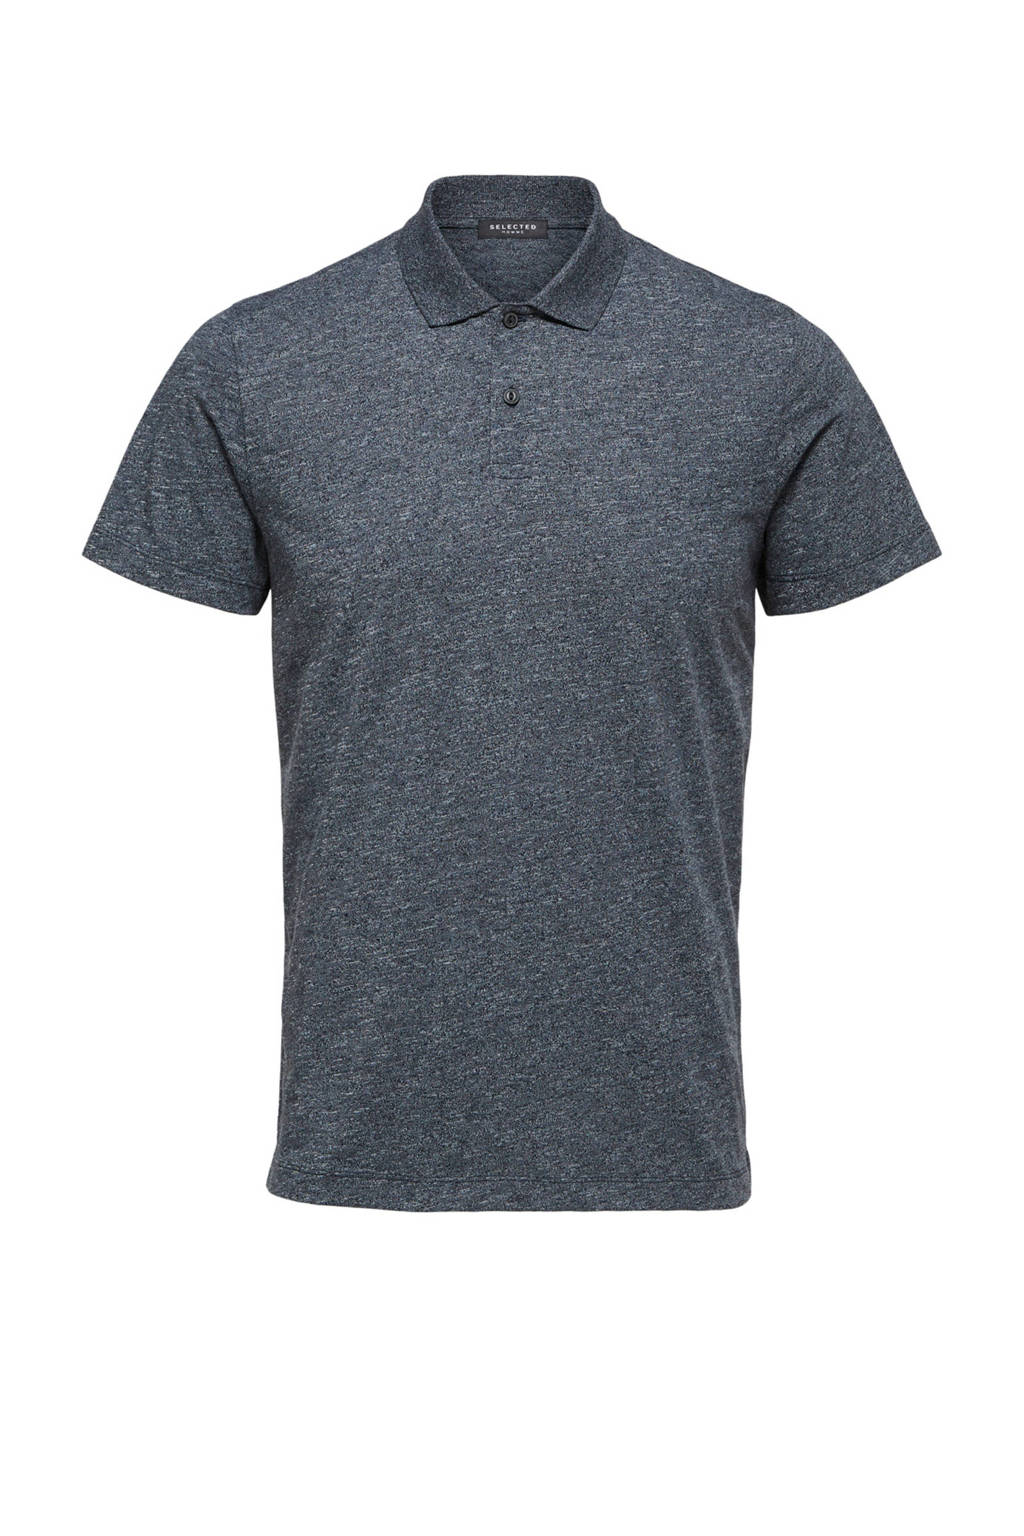 SELECTED HOMME regular fit polo donkerblauw, Donkerblauw